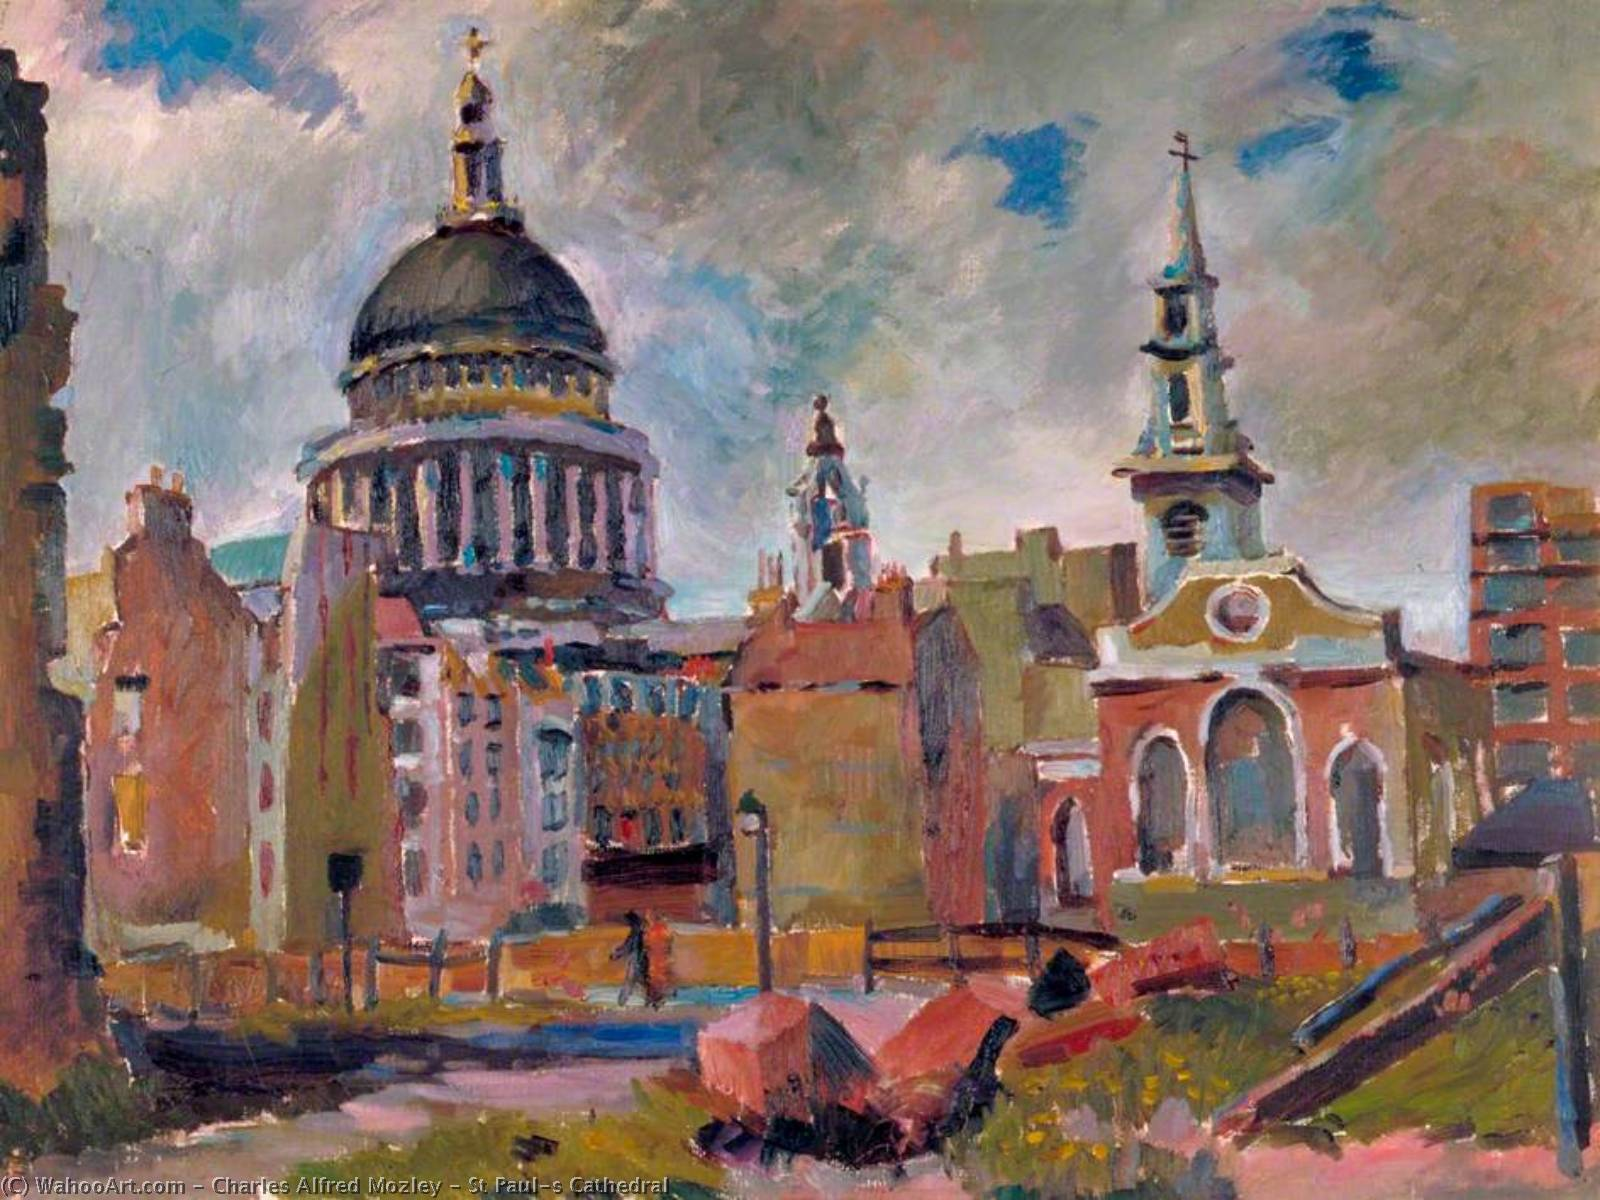 Str Paul`s Kathedrale, 1940 von Charles Alfred Mozley (1914-1991, United Kingdom) |  | WahooArt.com